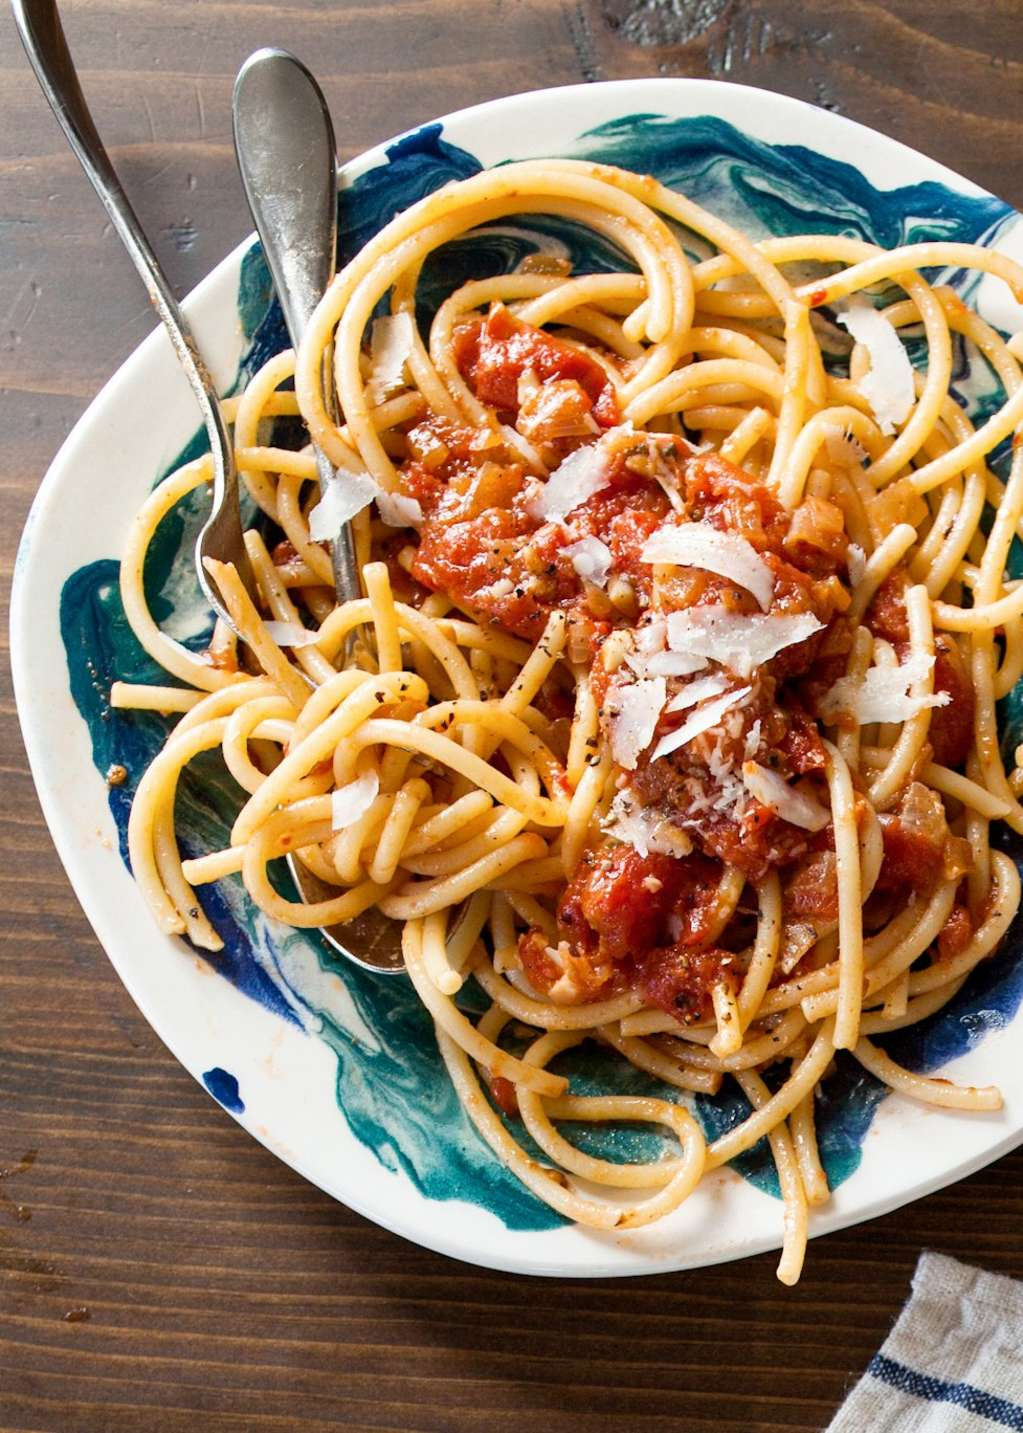 5 Easy Pasta Sauces to Know by Heart